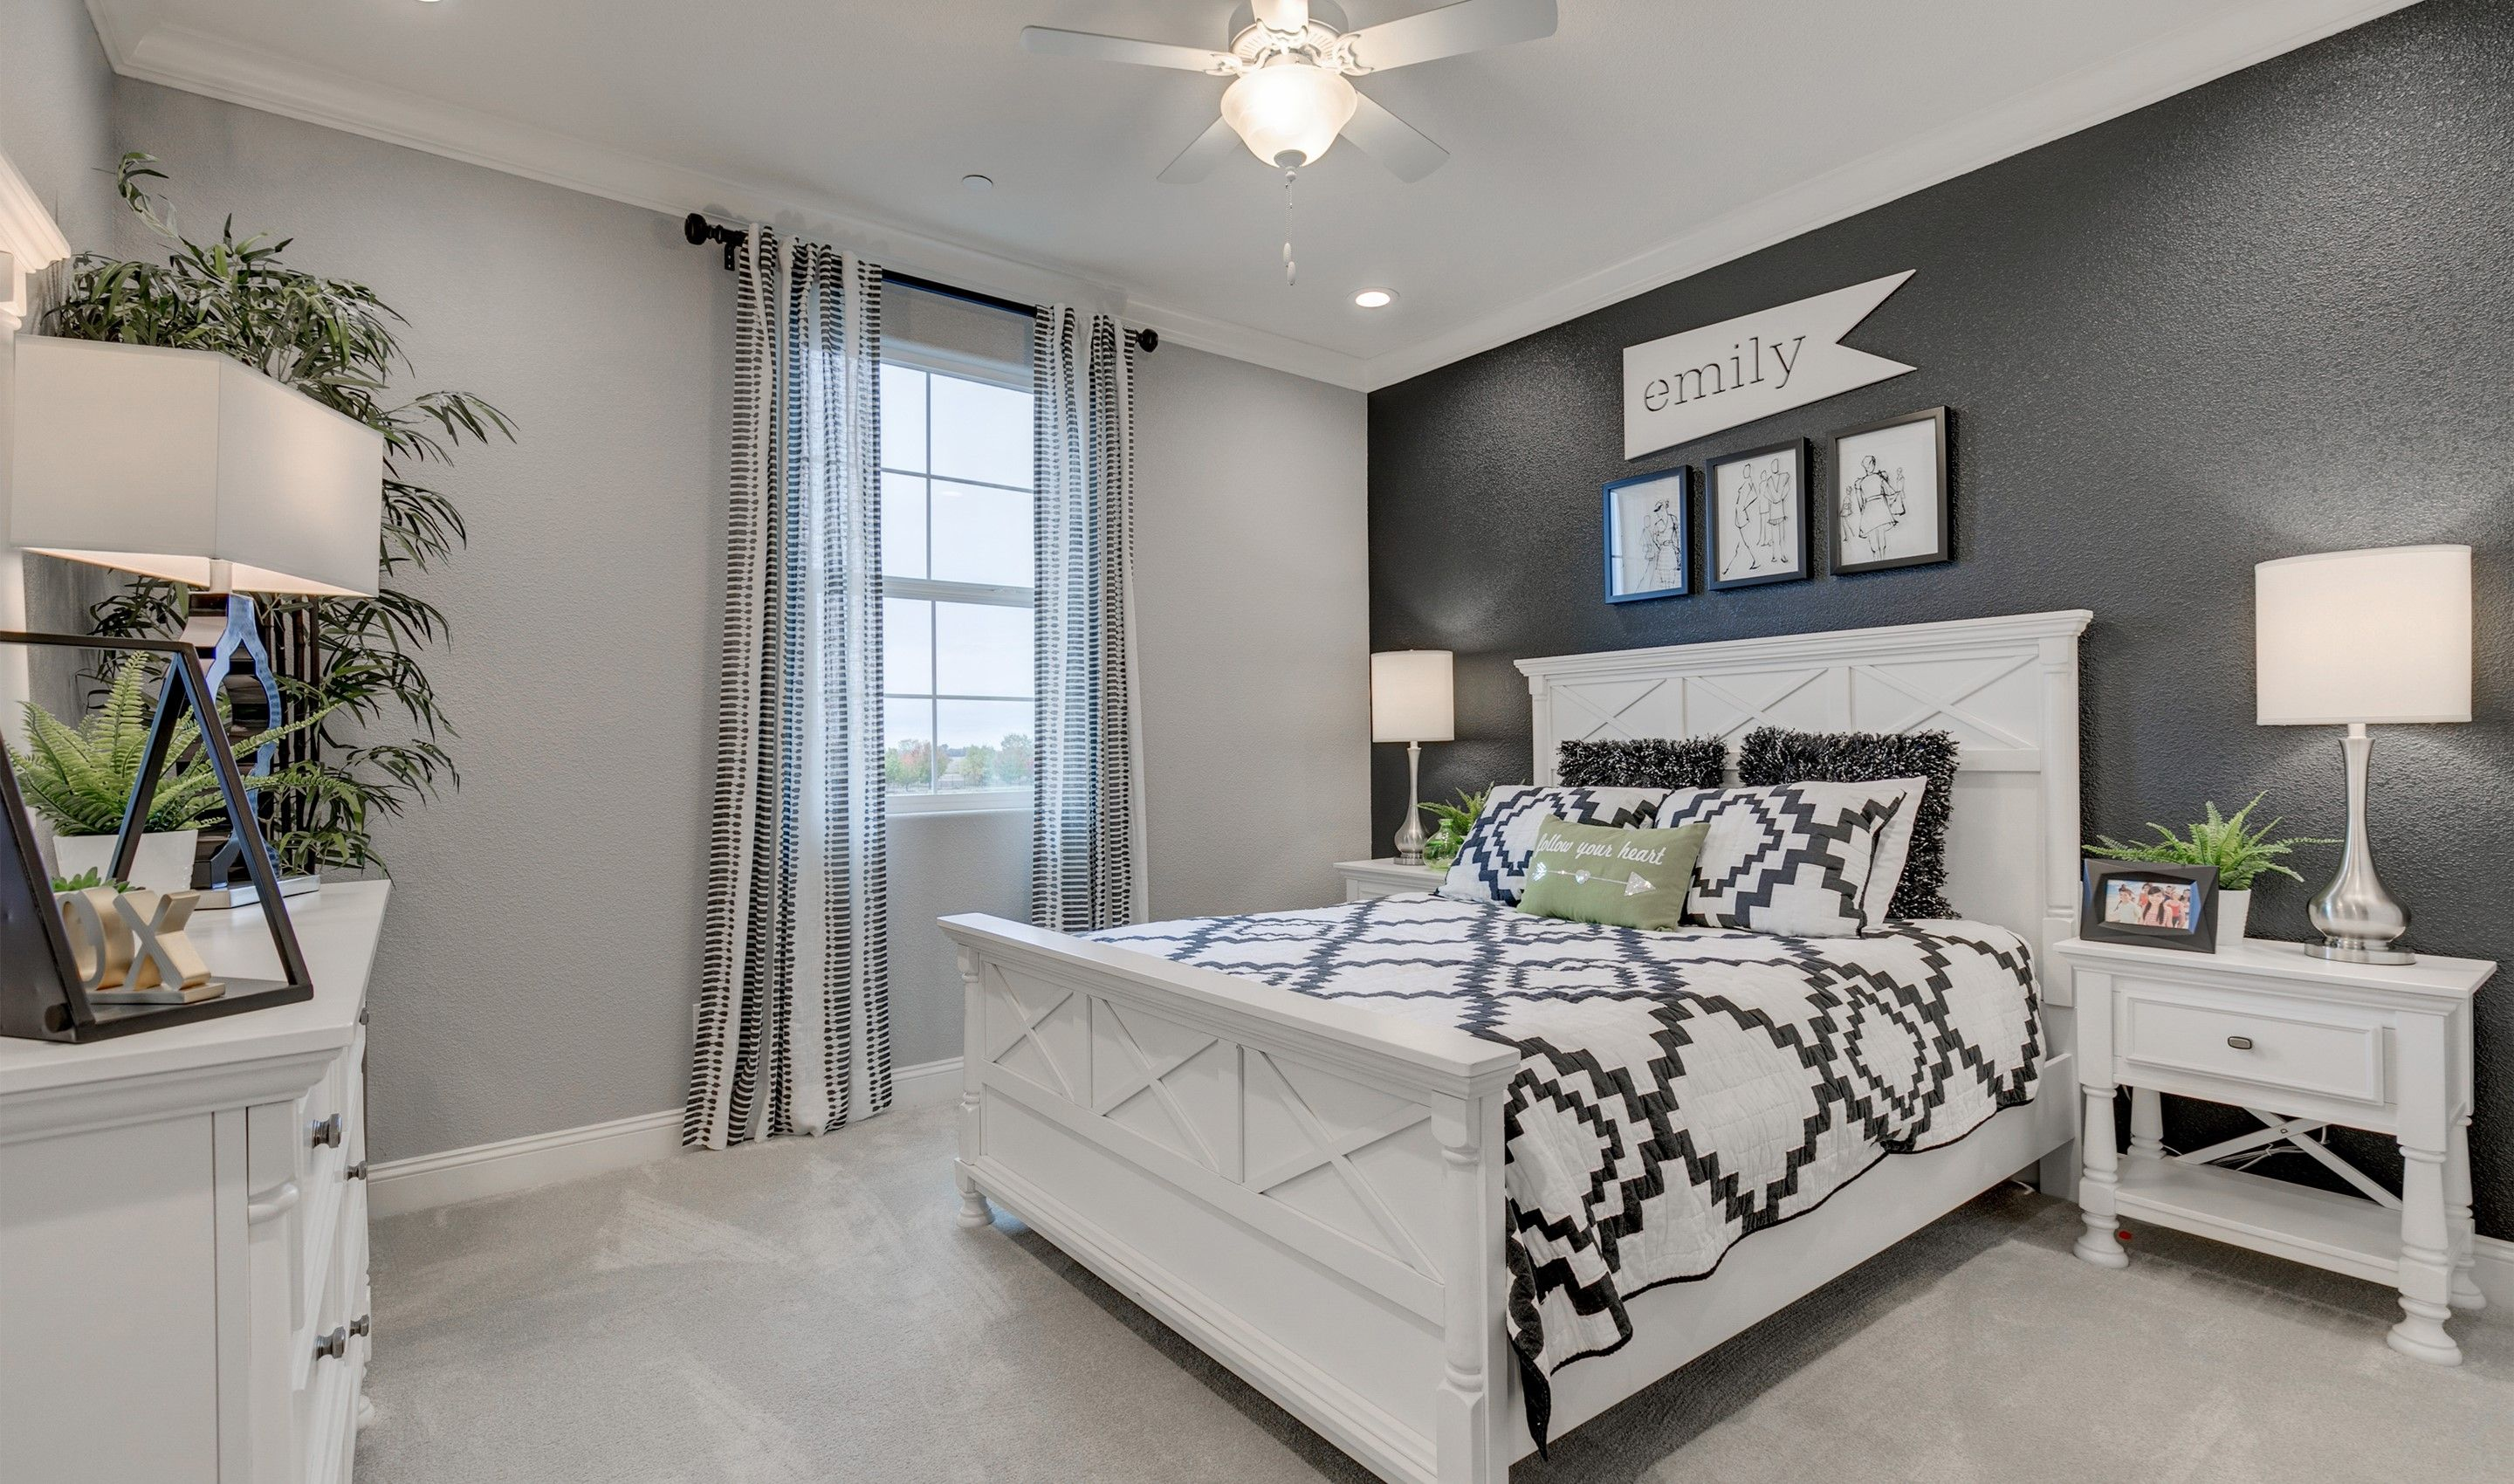 Bedroom featured in the Canopy By K. Hovnanian® Homes in Stockton-Lodi, CA